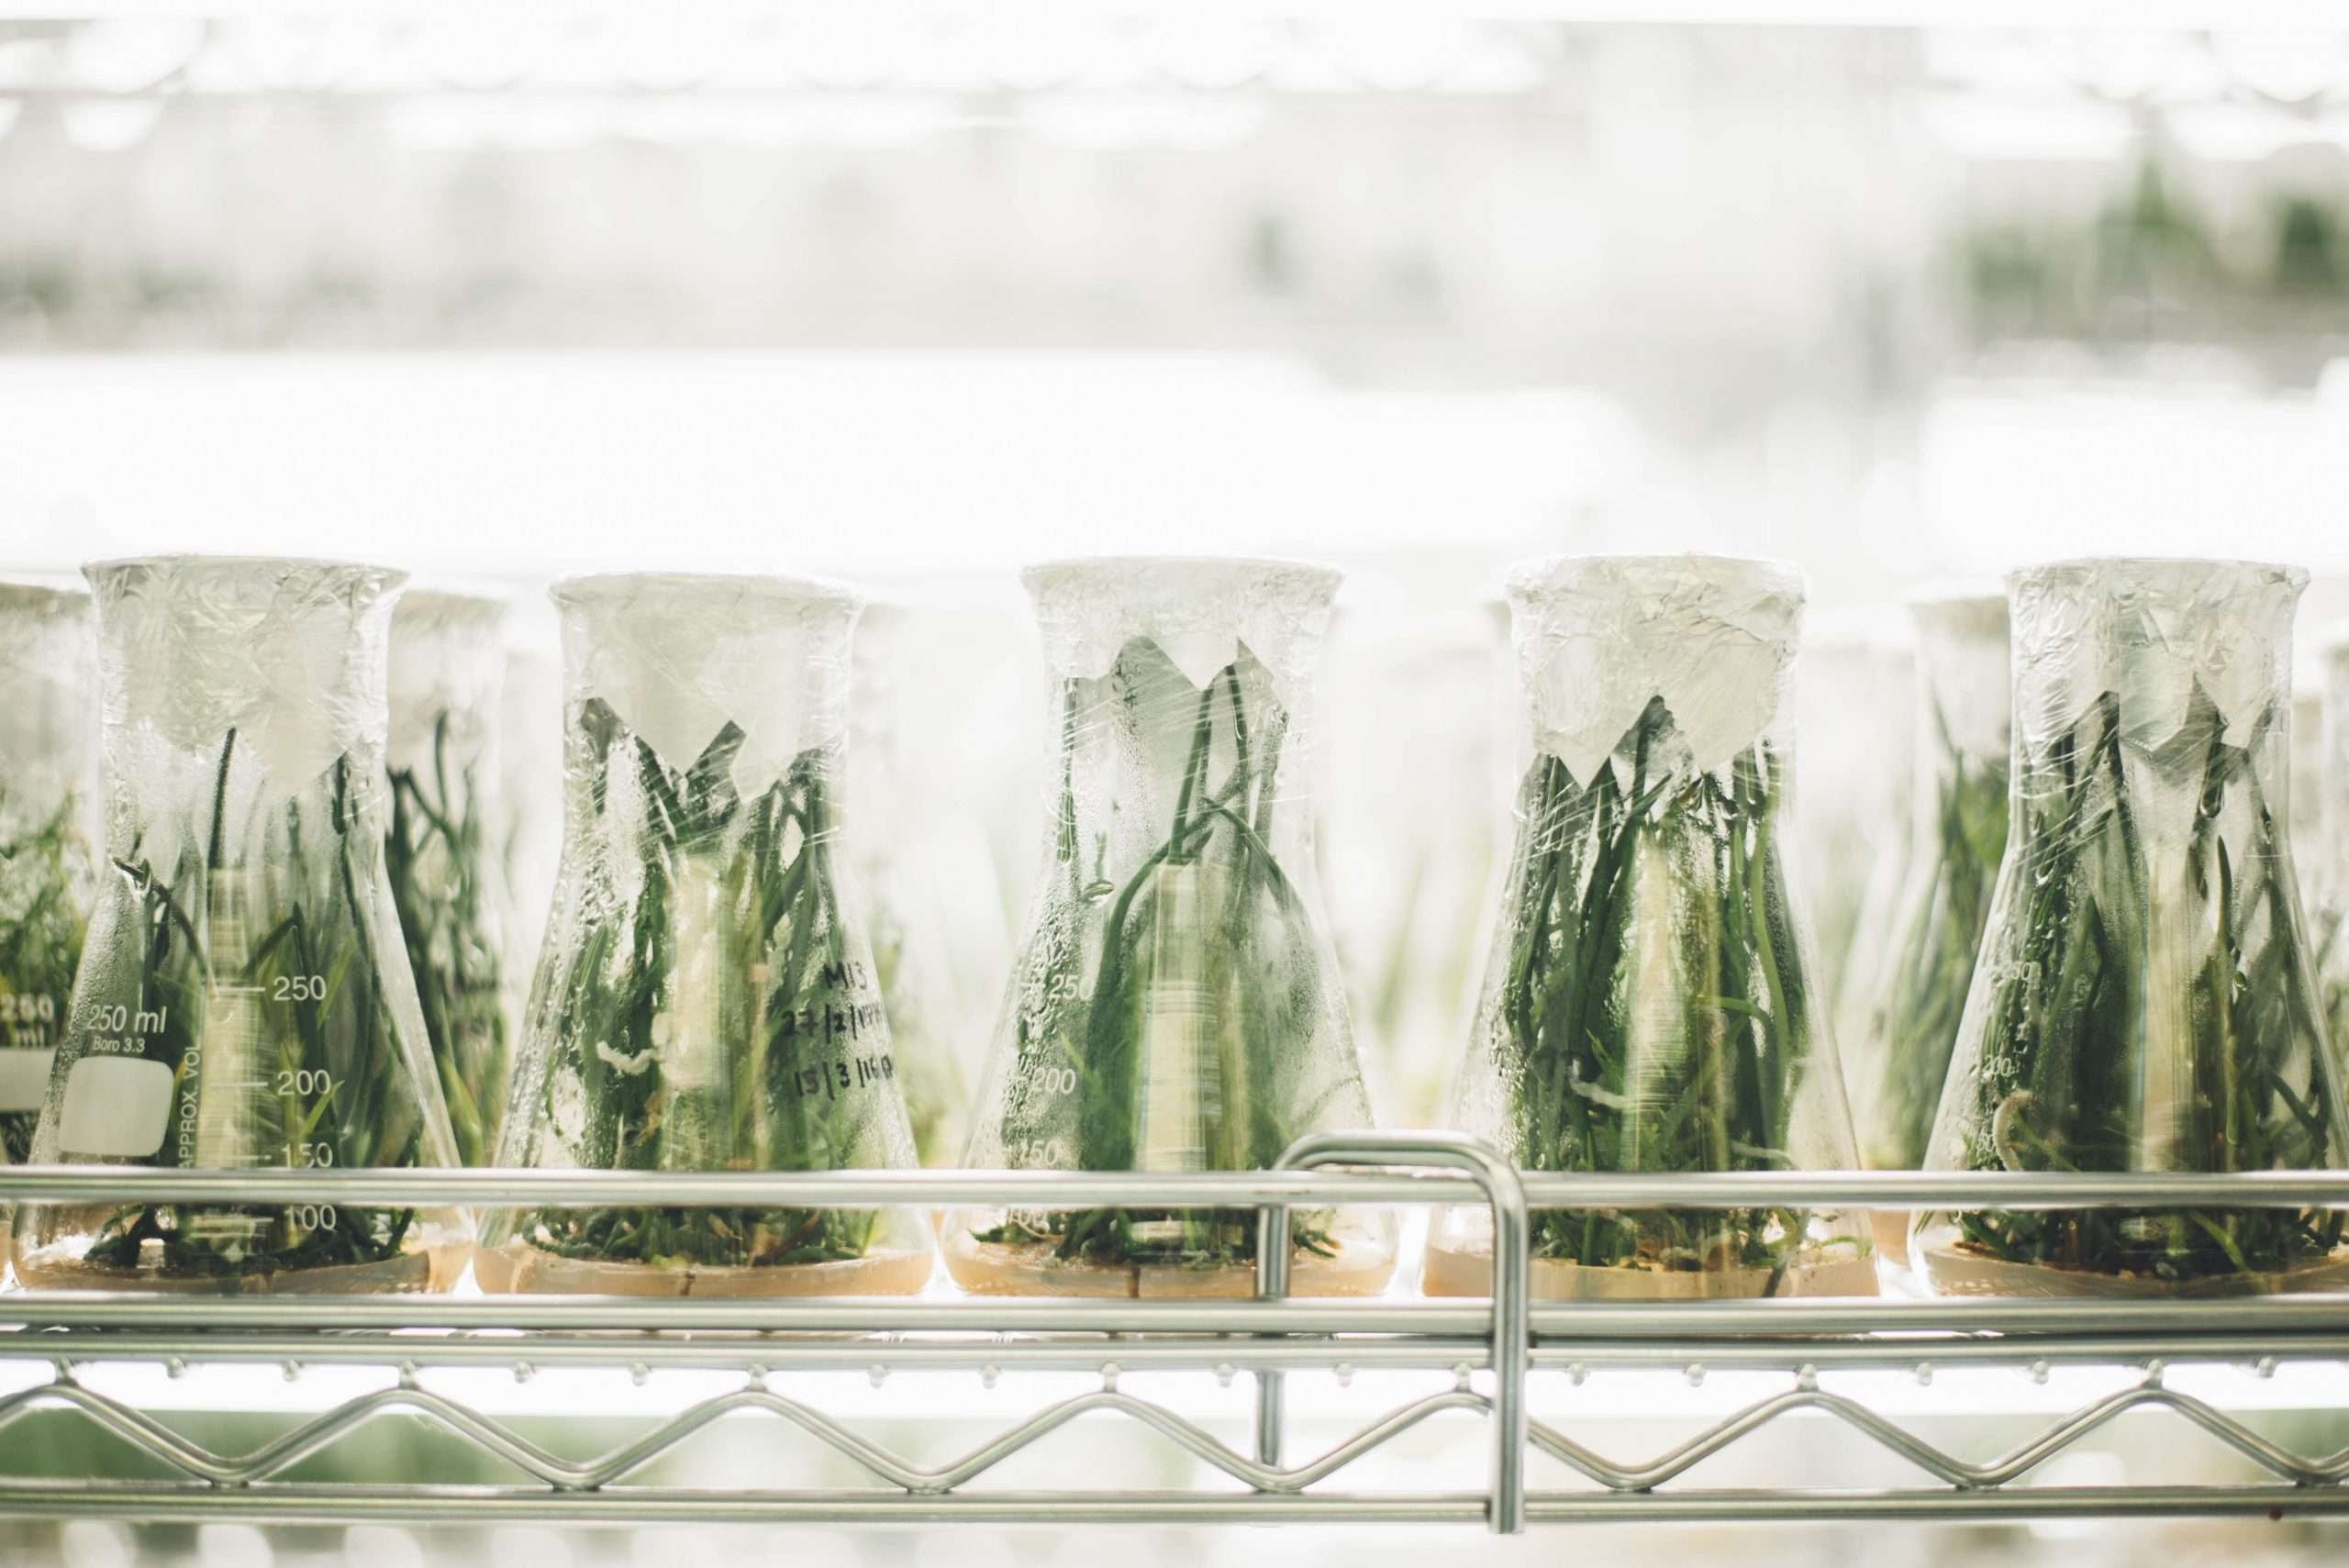 Plants in test tubes